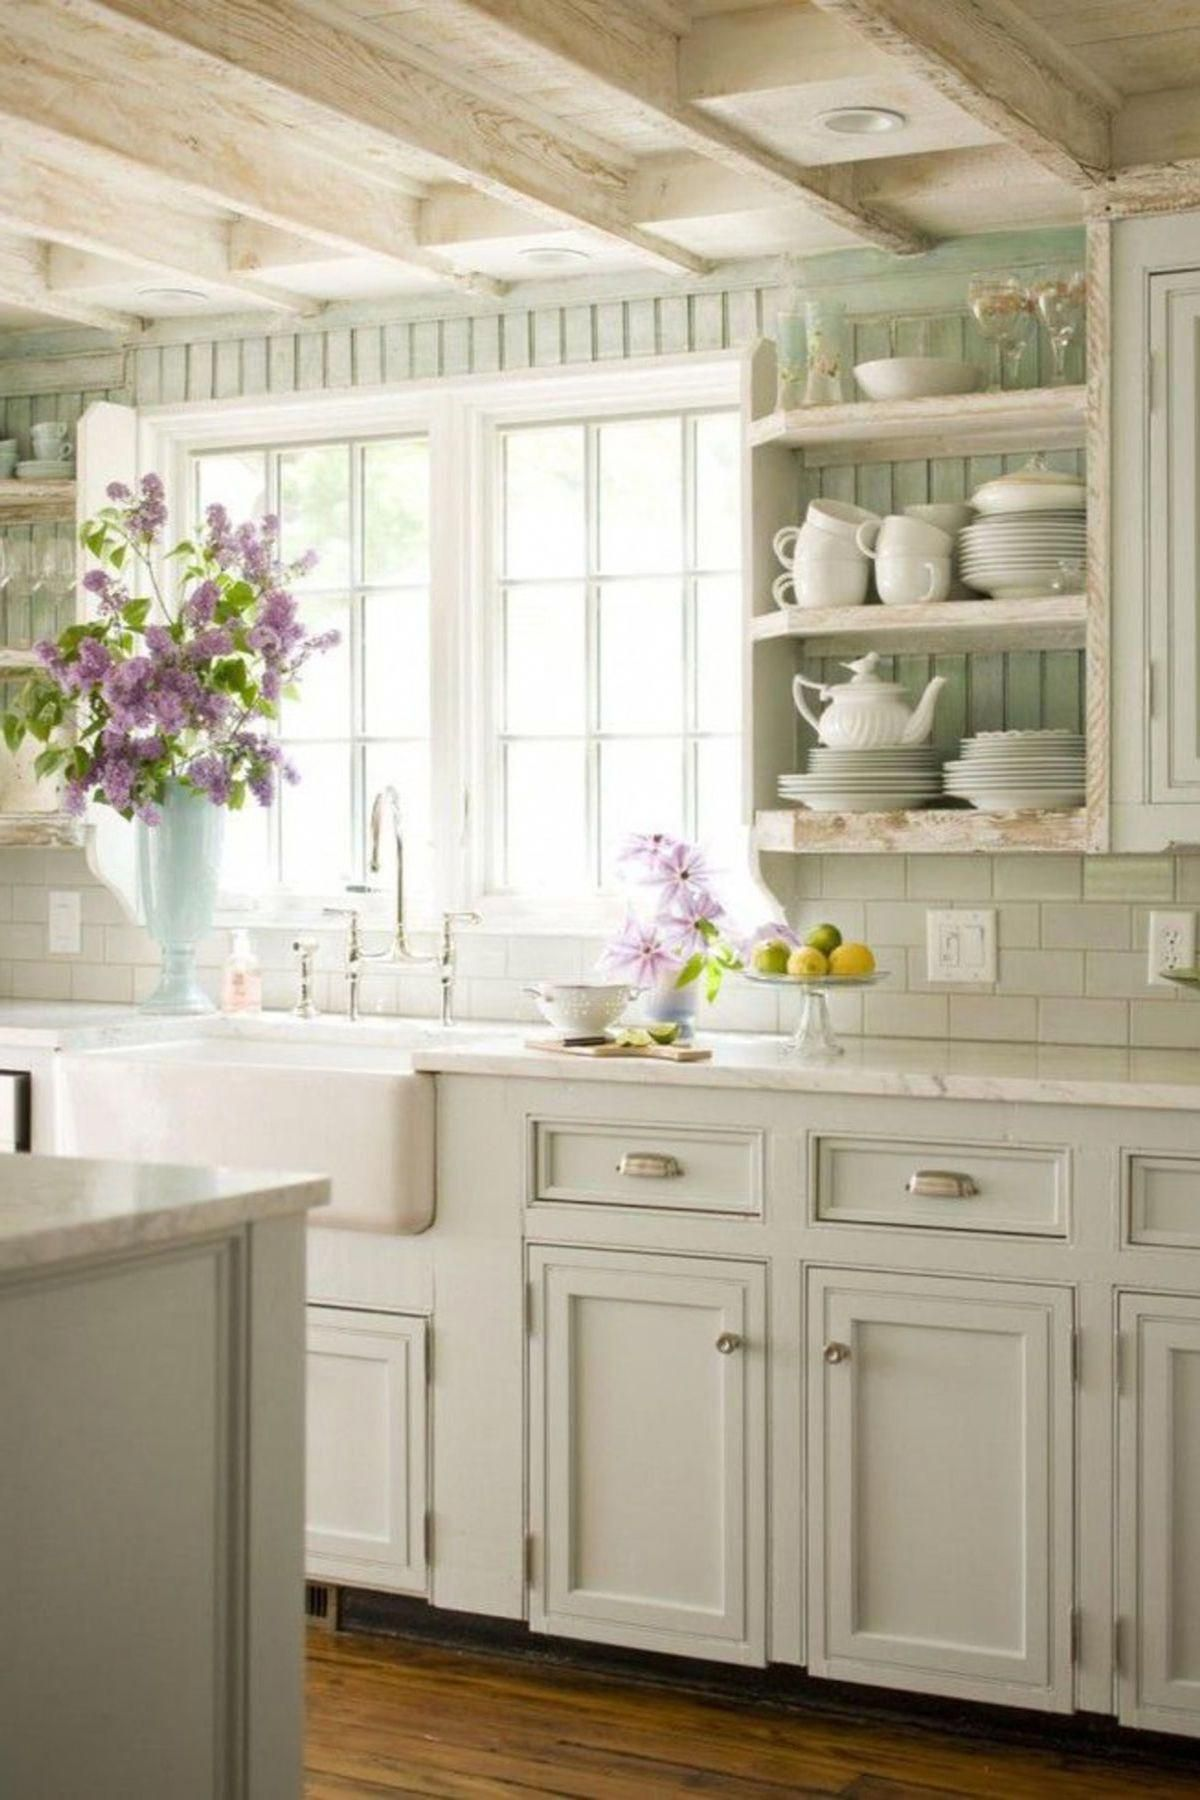 Photo of Farmhouse Kitchen Ideas & PICTURES of Country Farmhouse Kitchens on a Budget (NEW for 2020)